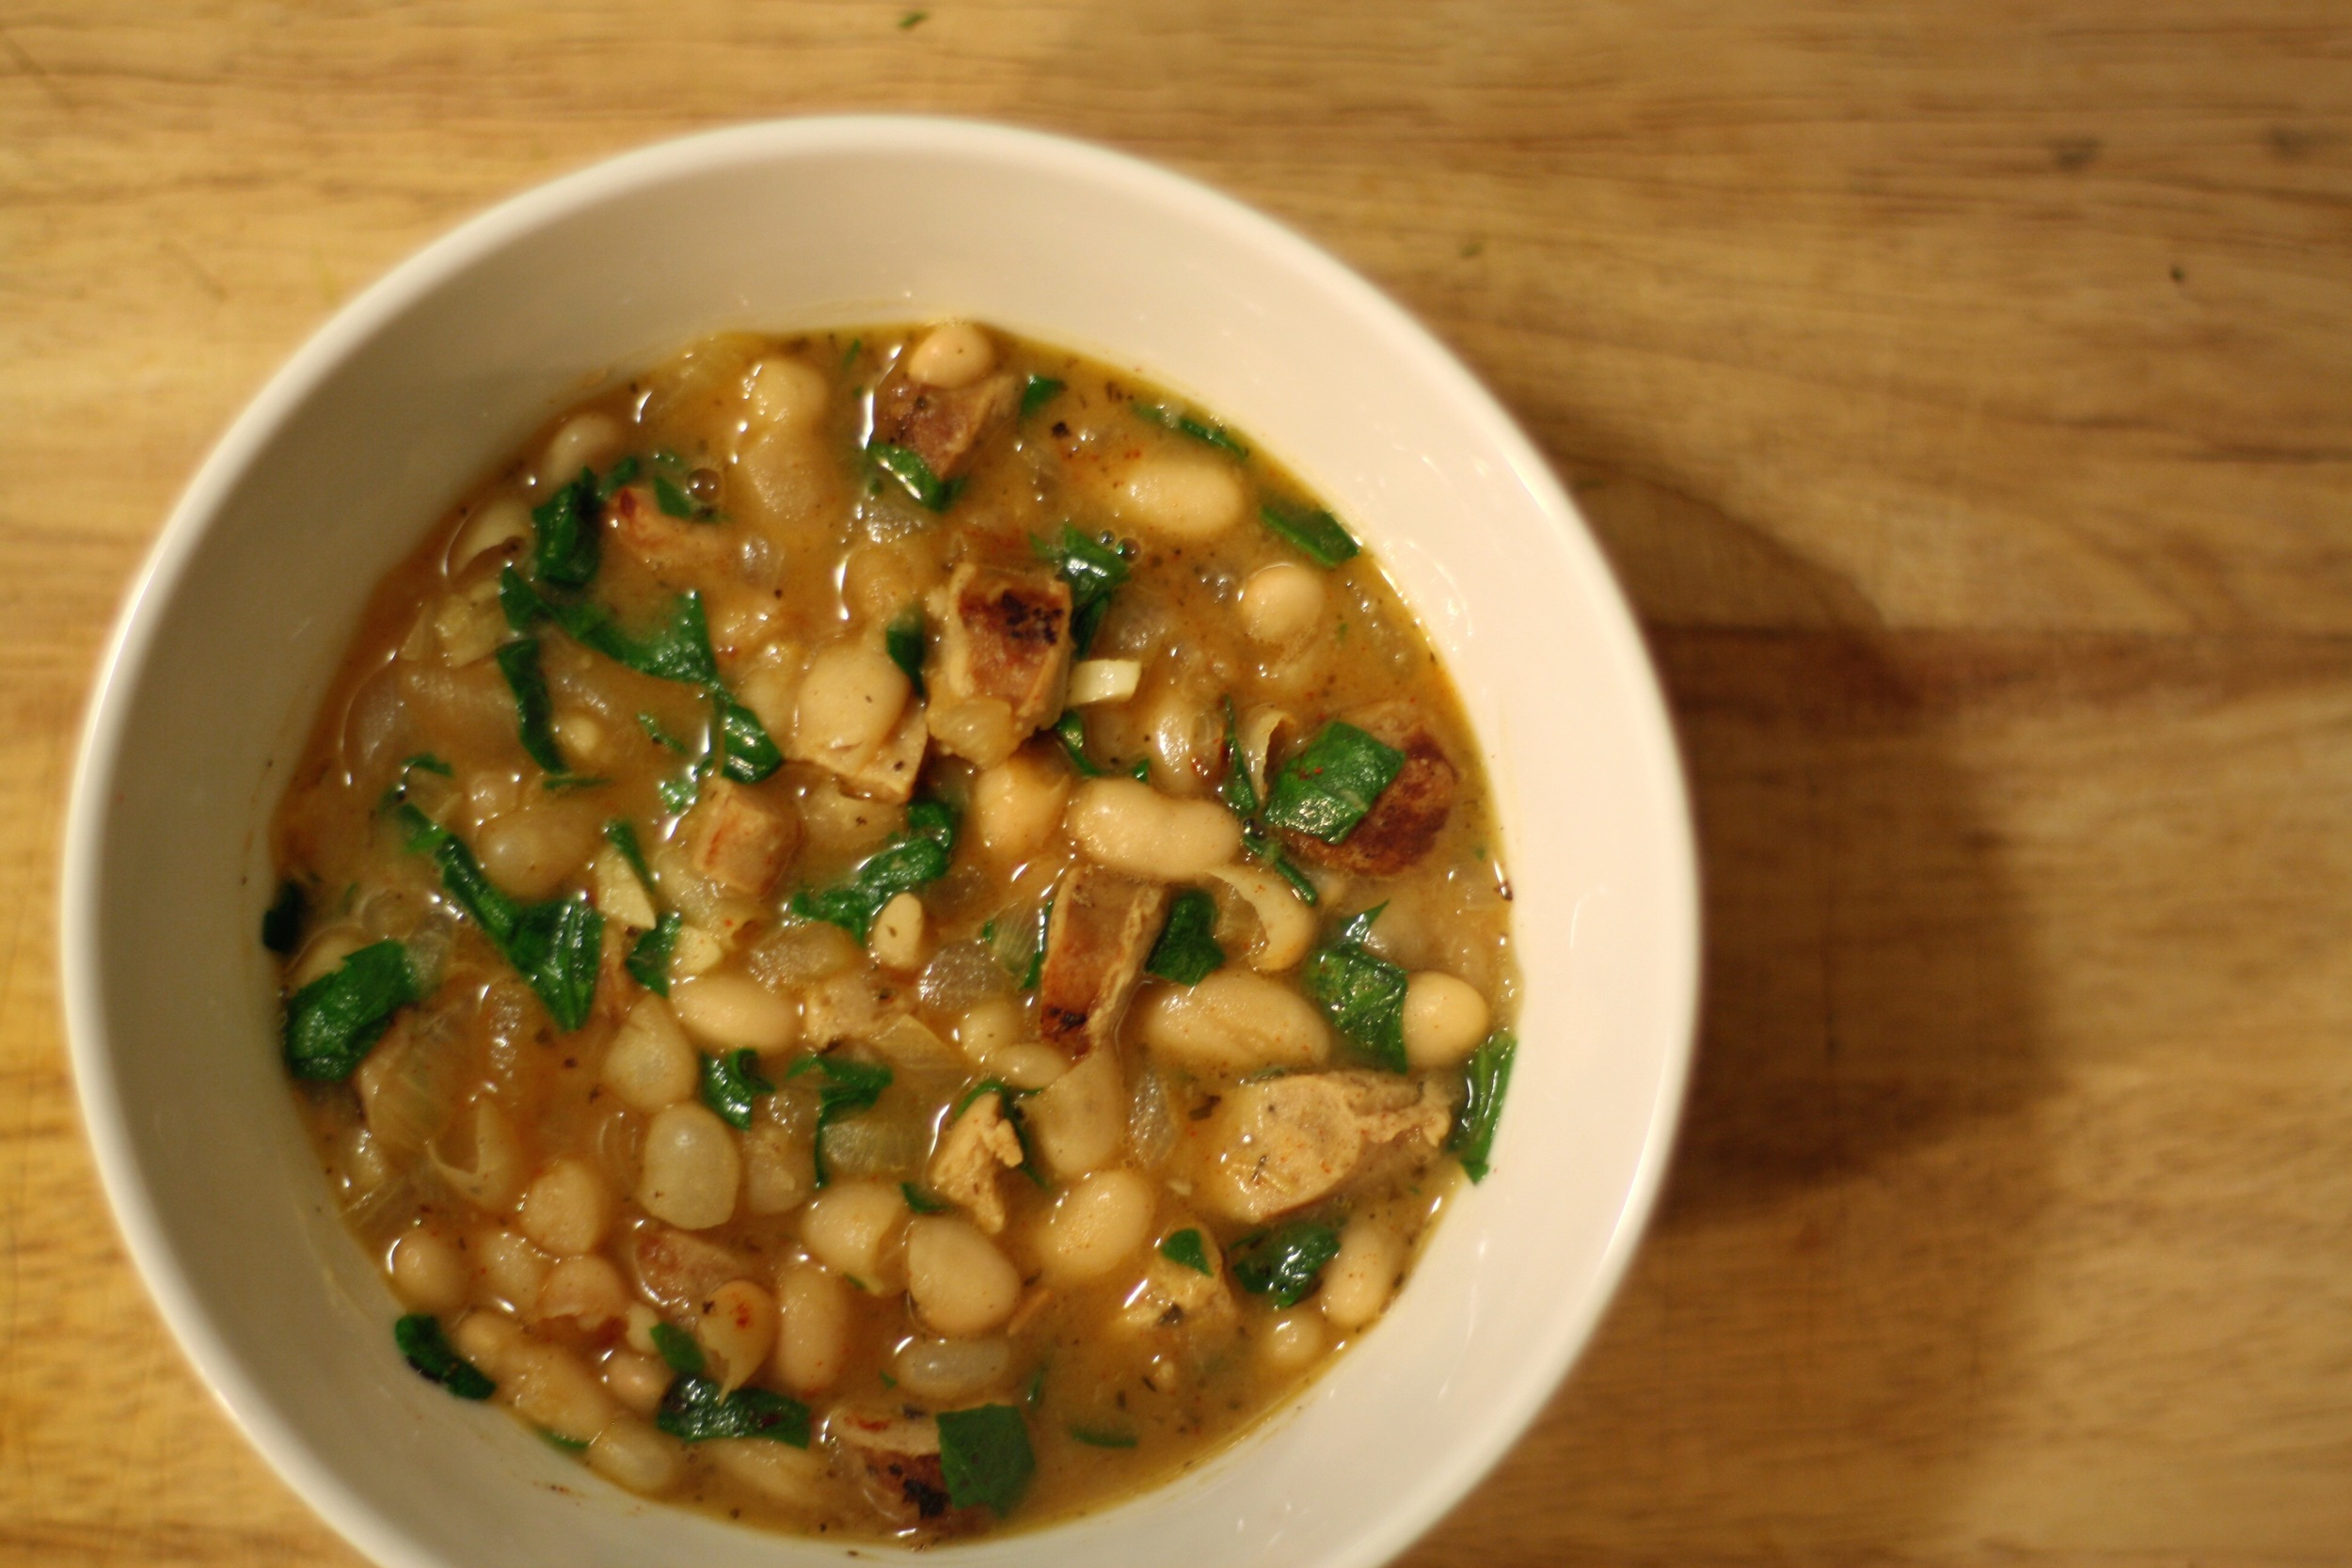 Sausage-and-white-bean-stew_heatherbyhand.jpg